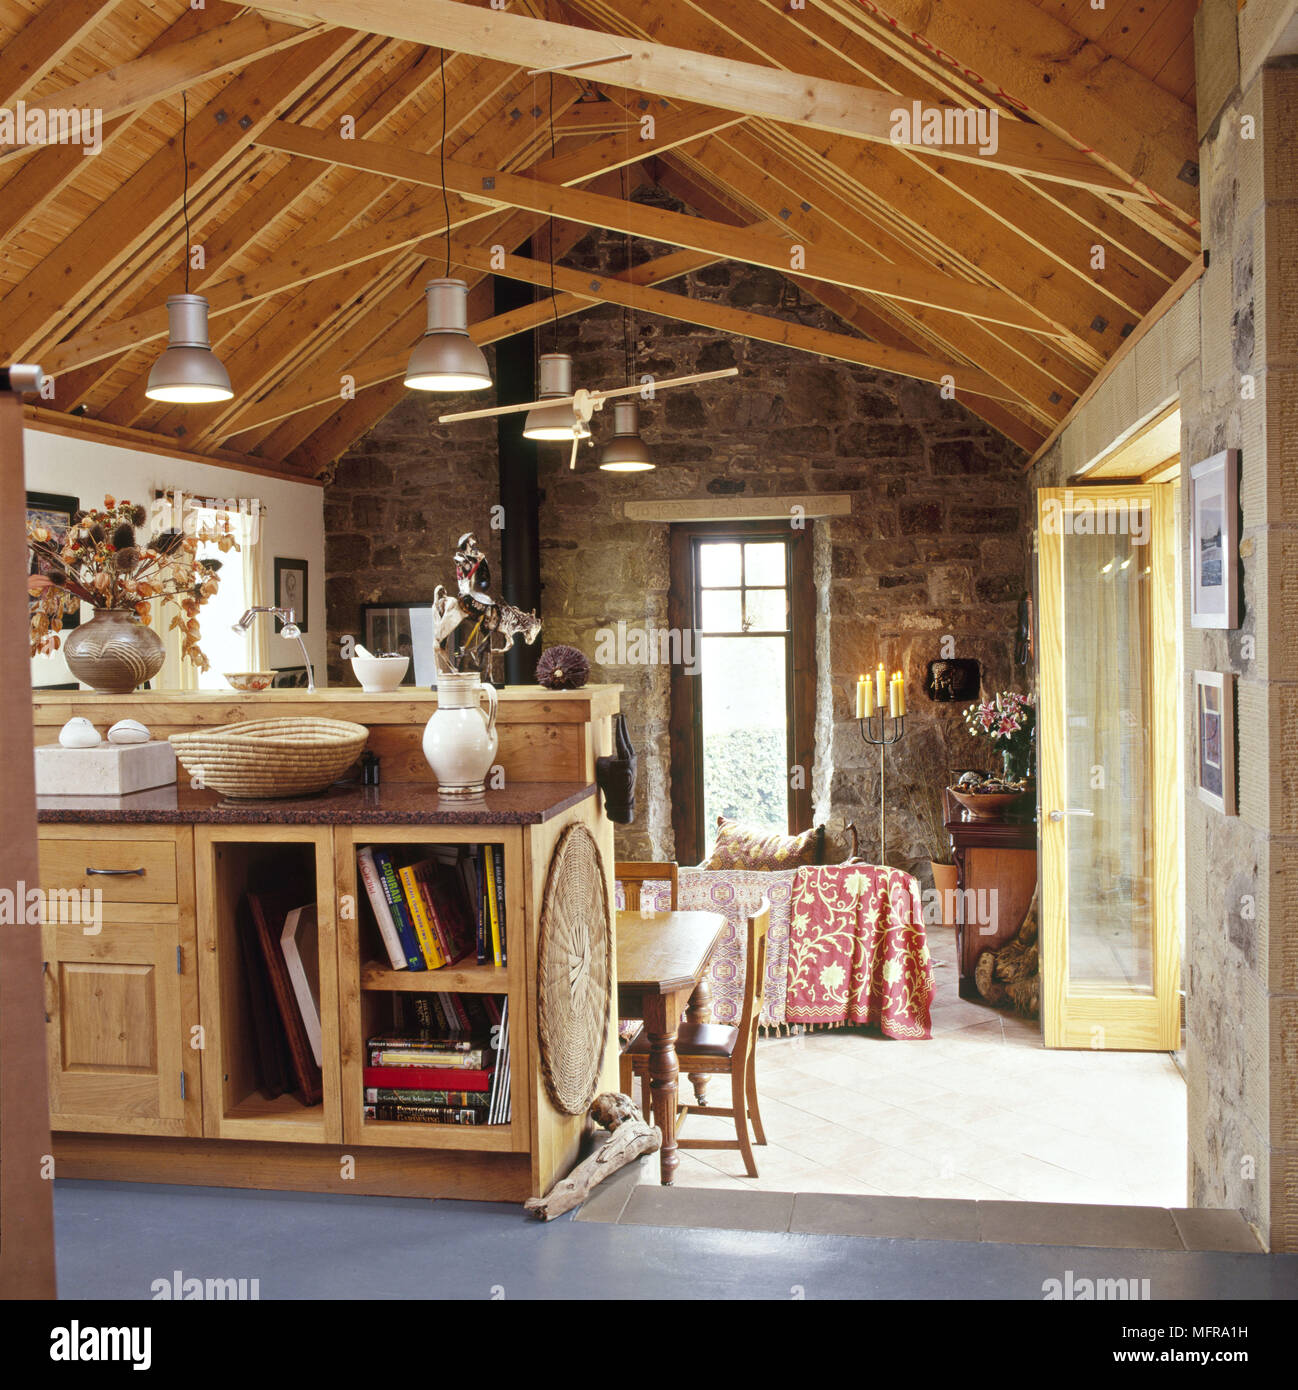 rafters living lighting. Open Plan Country Kitchen In Barn Conversion Neutral \u0026 Stone Walls Sloping Wood Ceiling Rafters Pendant Living Lighting